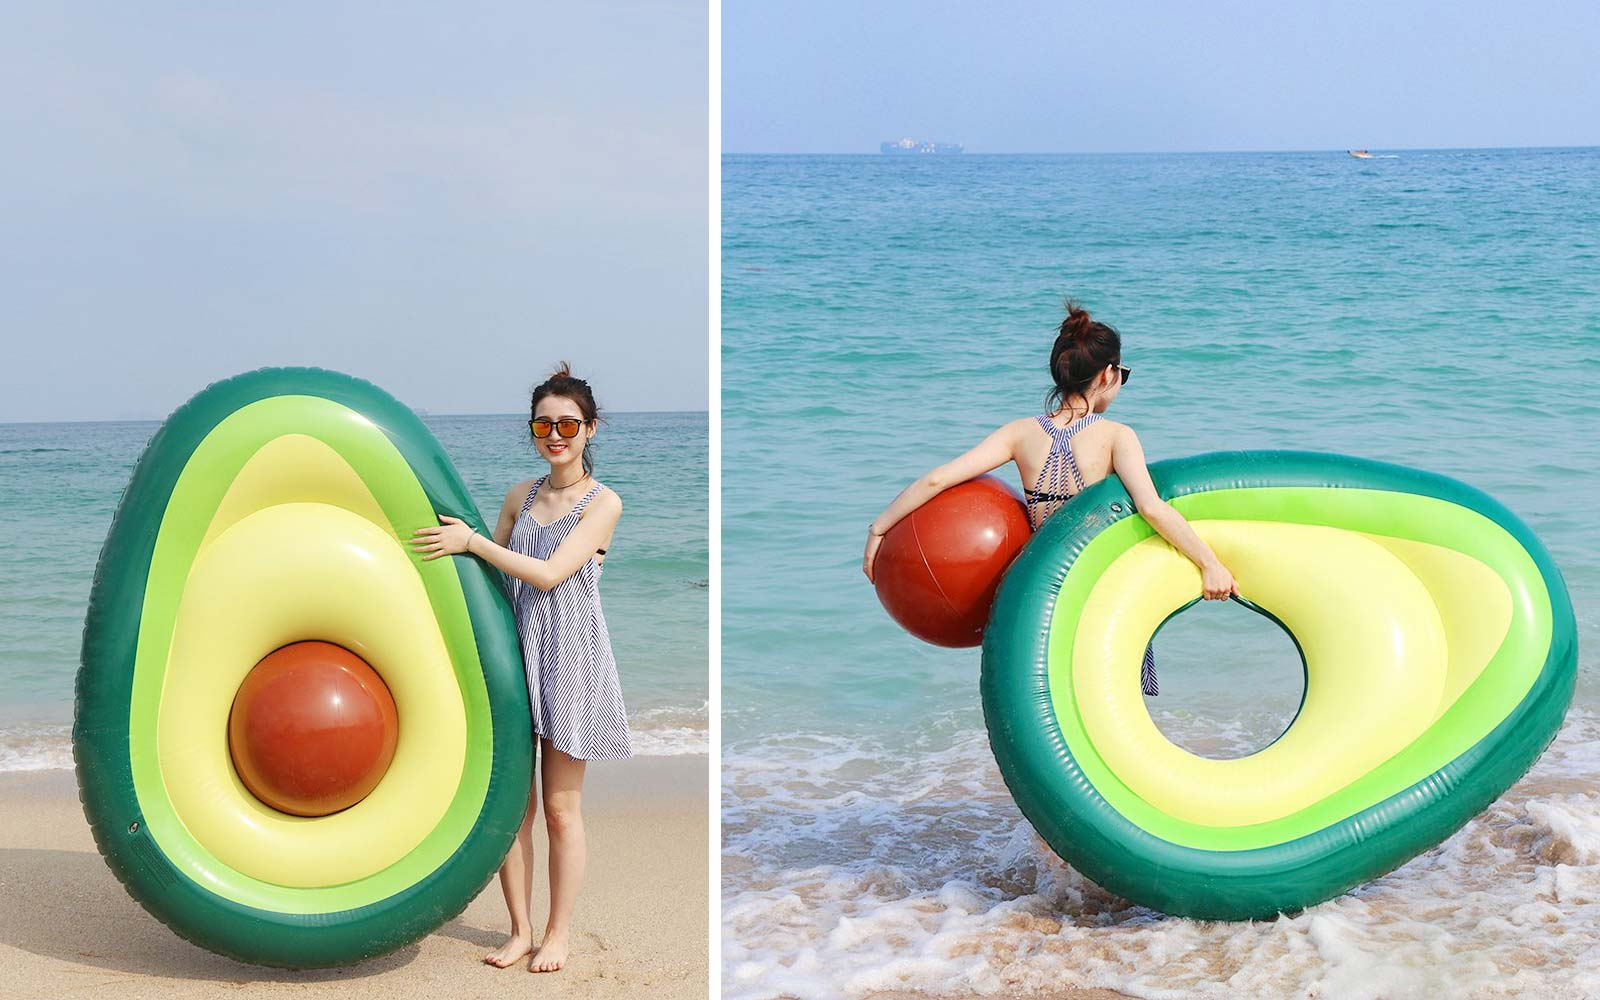 Amazon is selling an avocado-shaped pool float with a removable pit